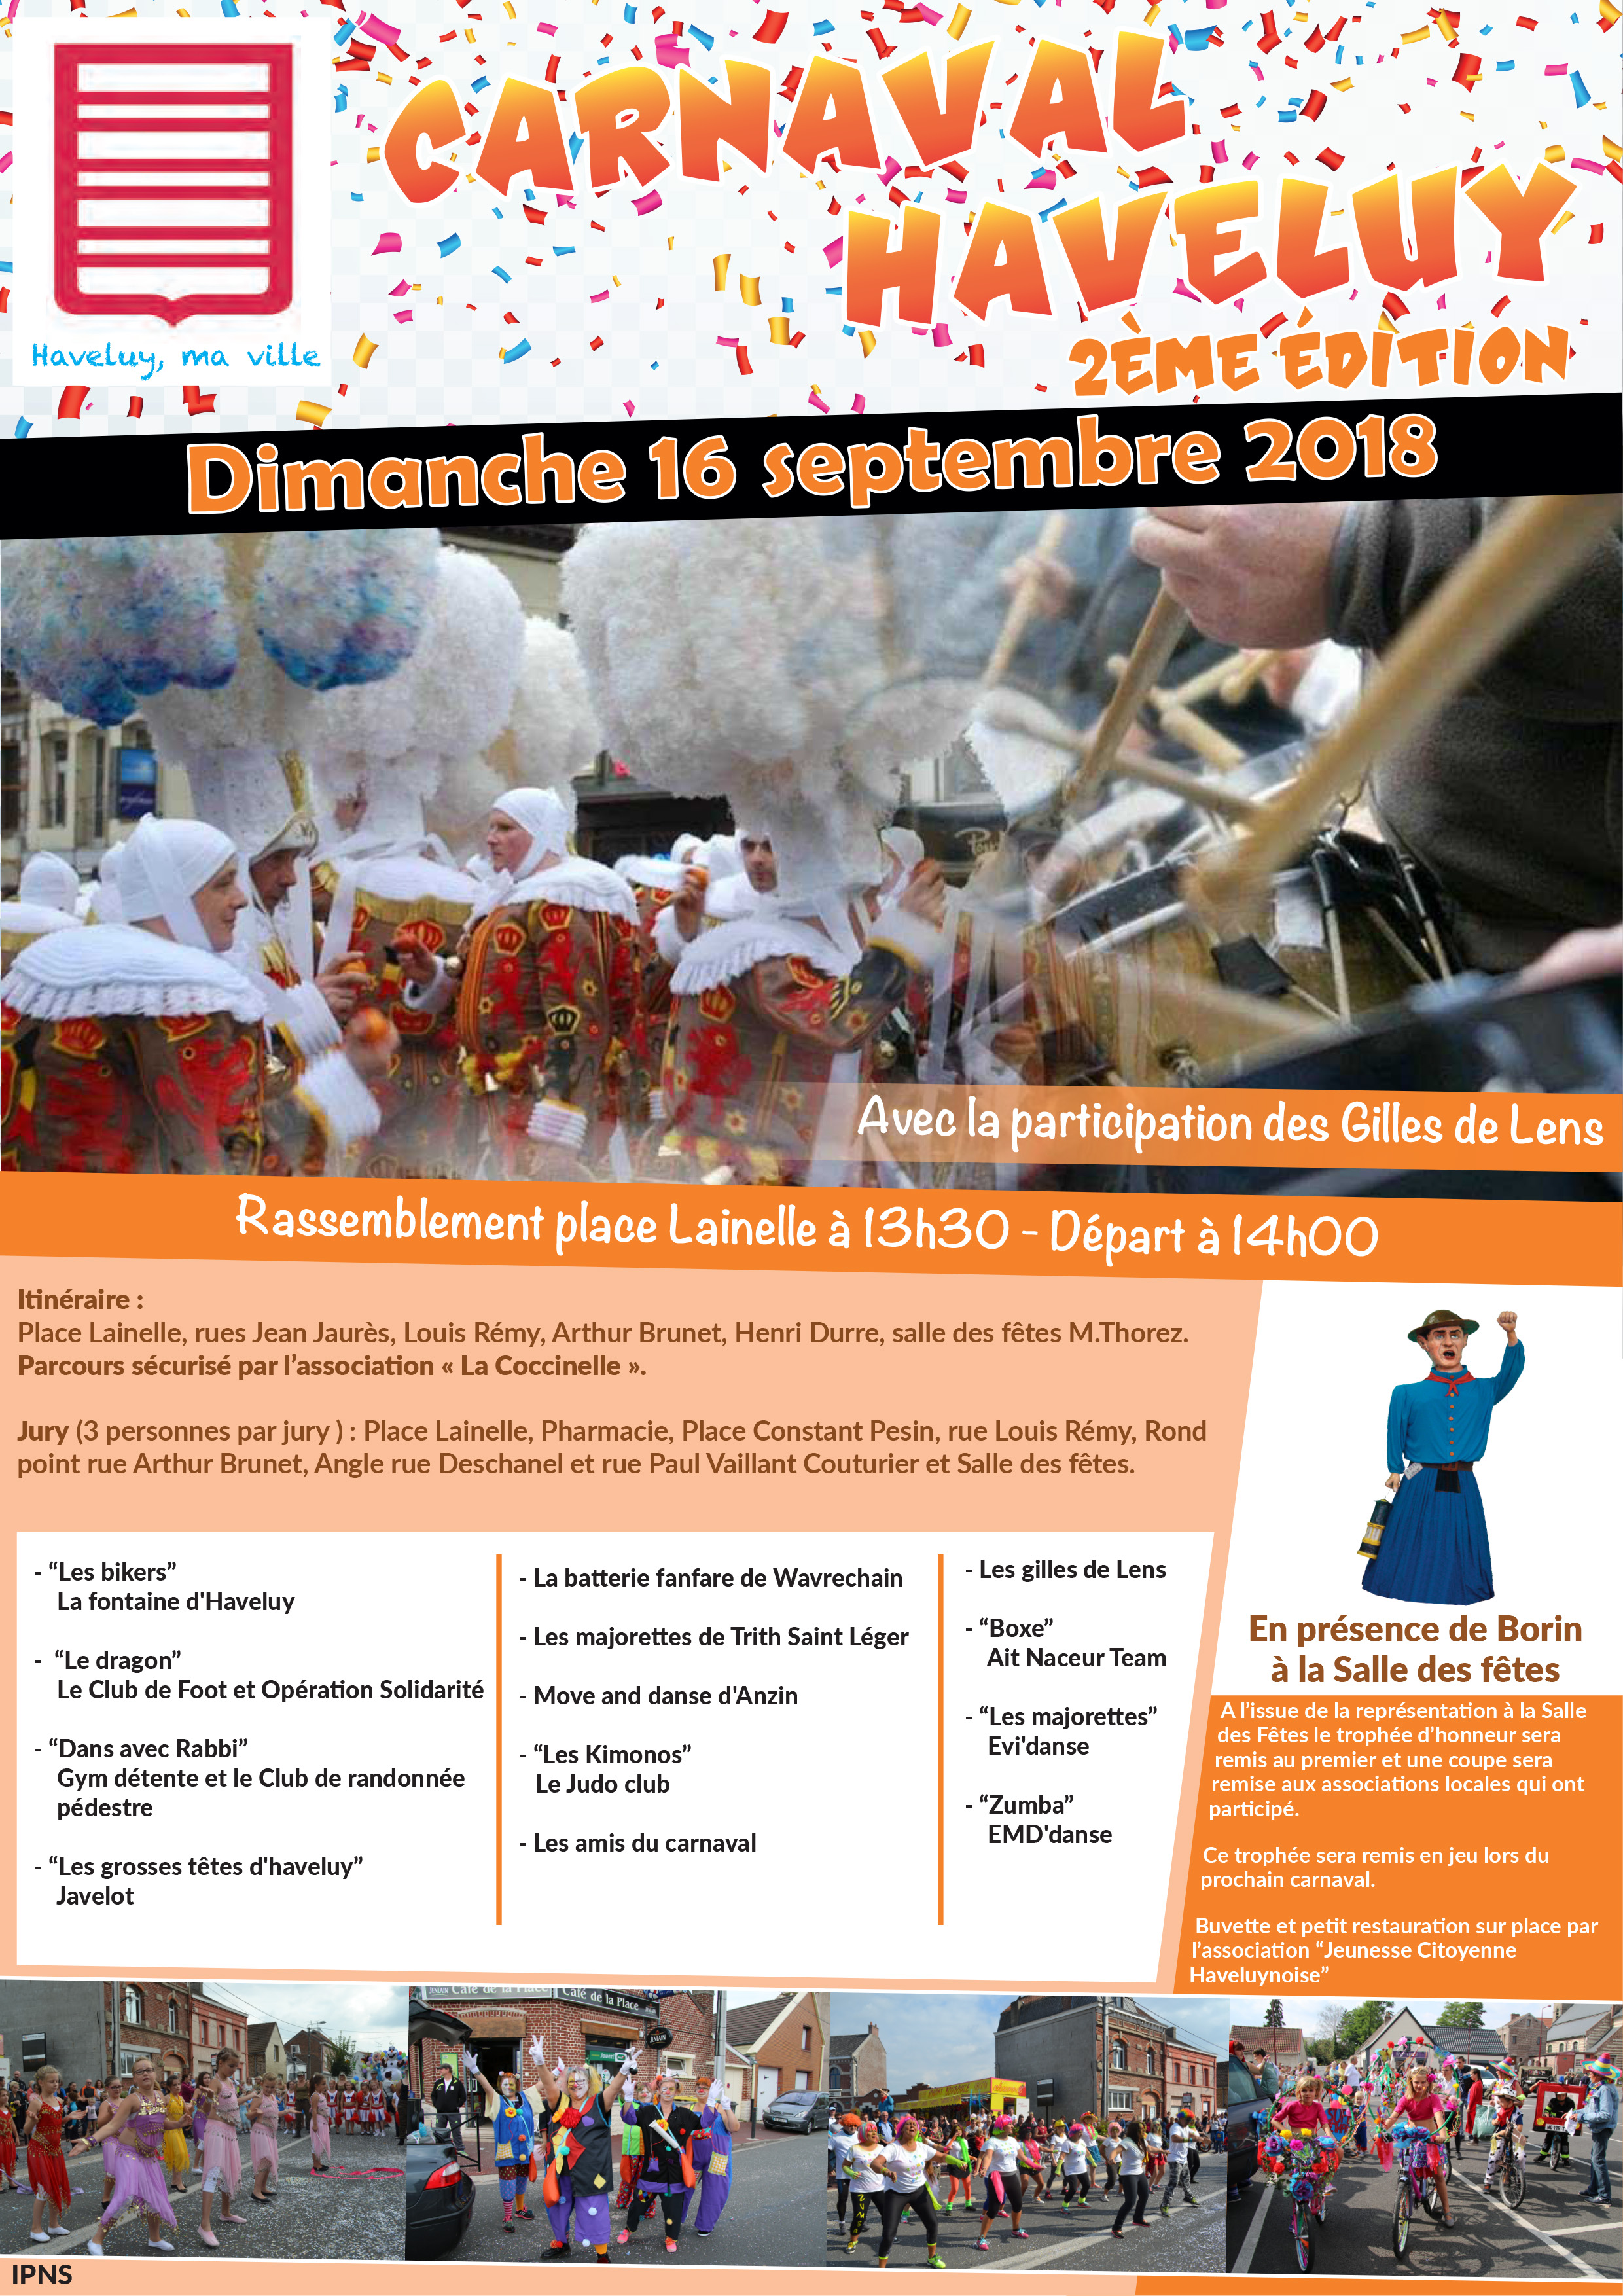 carnaval haveluy 16 septembre 2018